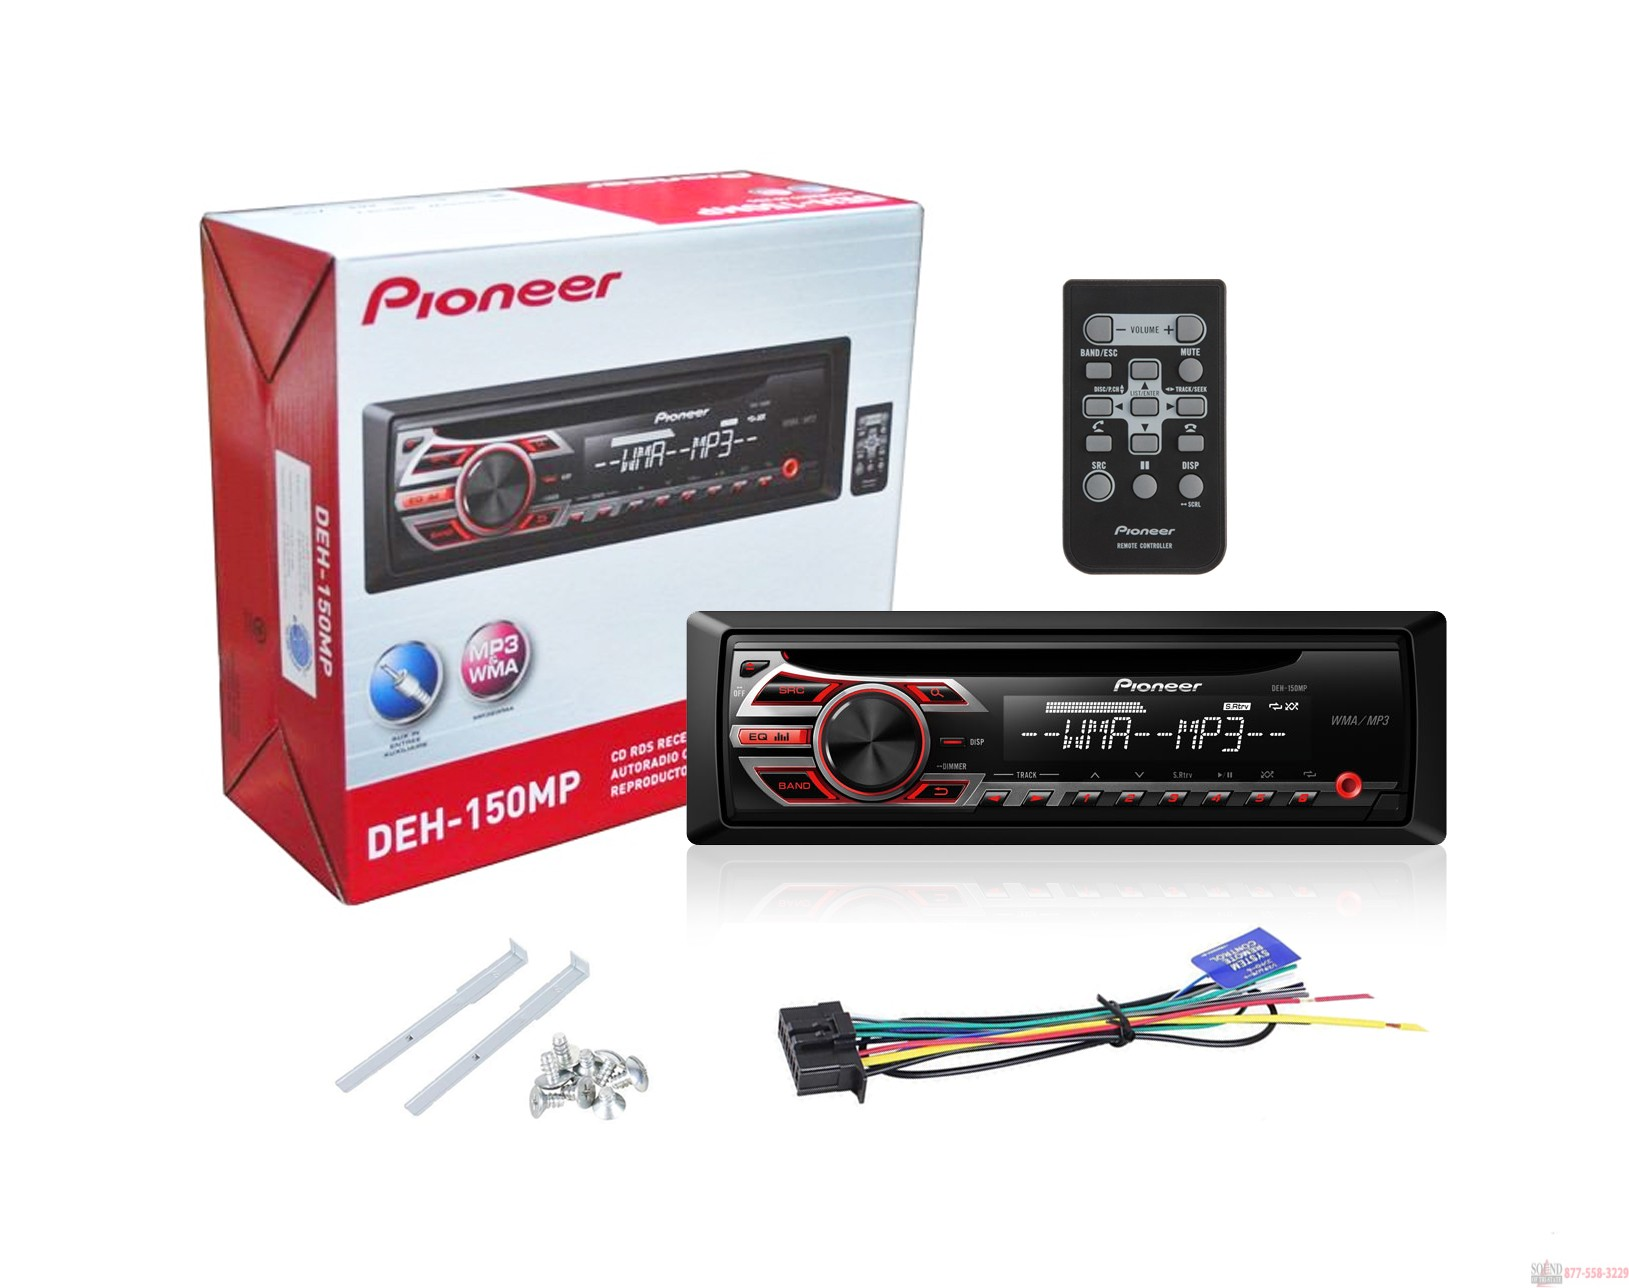 Pioneer DEH 150MP Car Stereo With MP3 Playback in box pioneer stereo wiring diagram pioneer free wiring diagrams pioneer deh-p9300 wiring diagram at mifinder.co